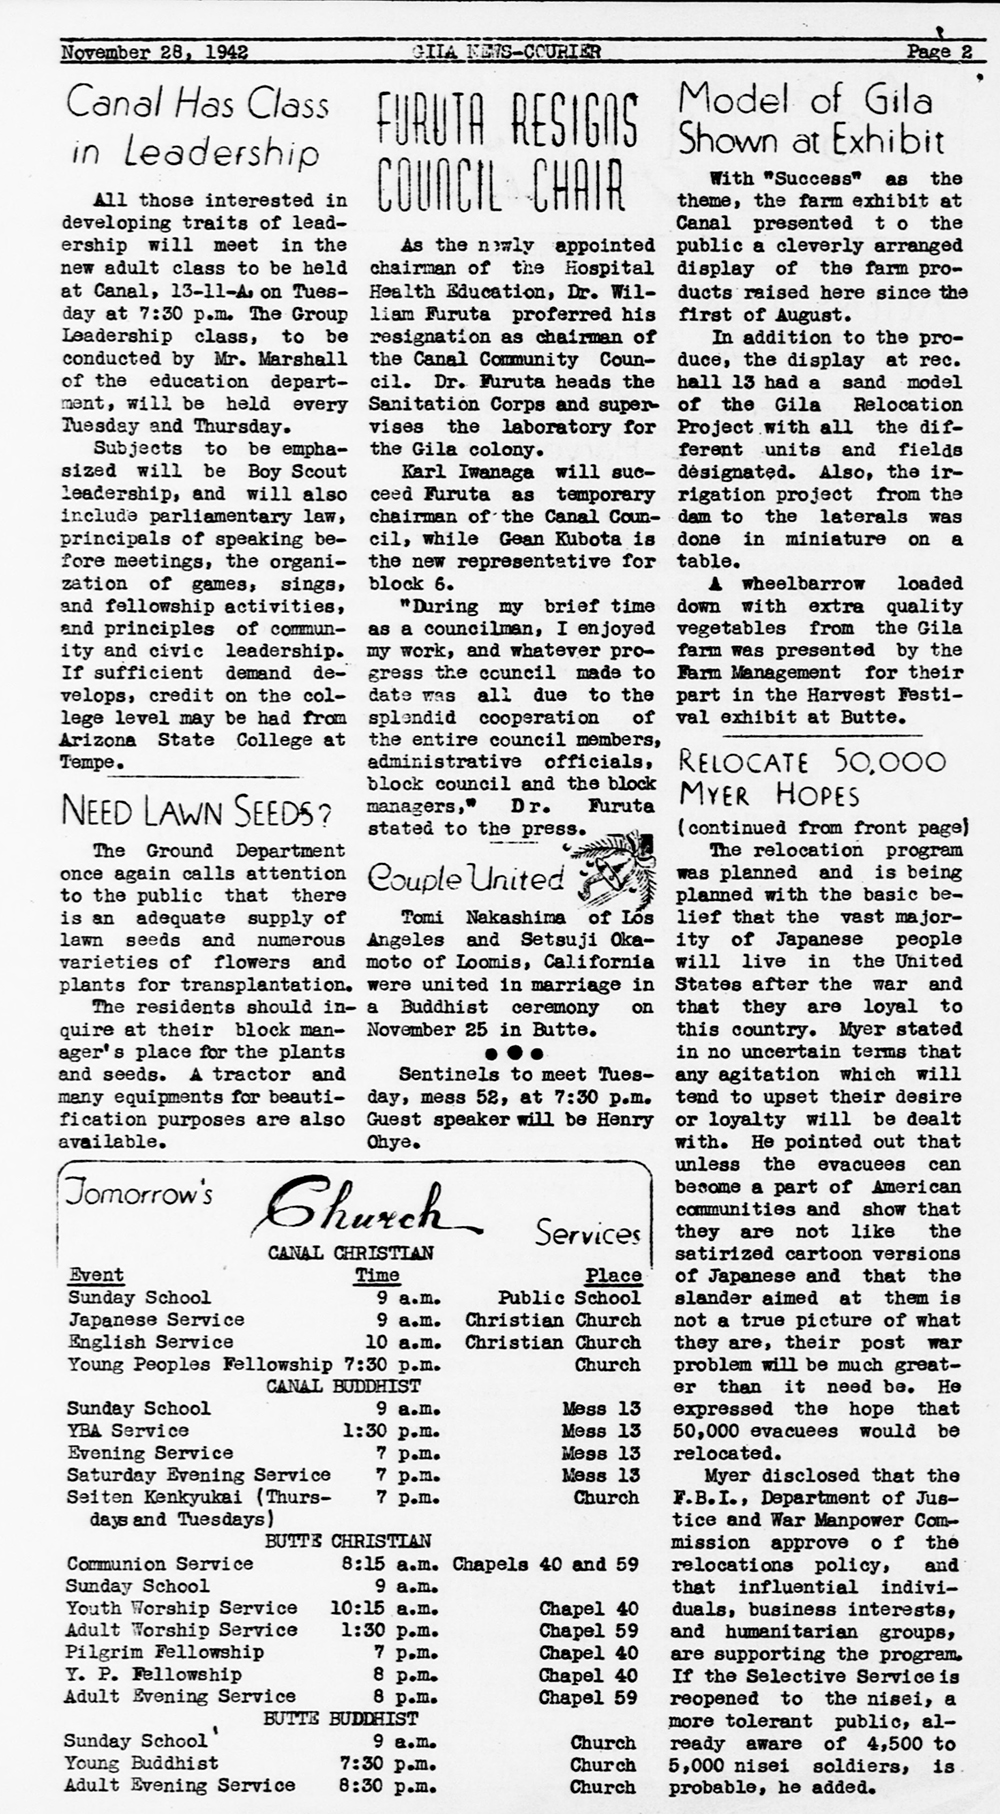 Gila News-Courier, an internment camp newspaper in Rivers, Arizona, November 28, 1942. Library of Congress, Prints and Photographs Division.